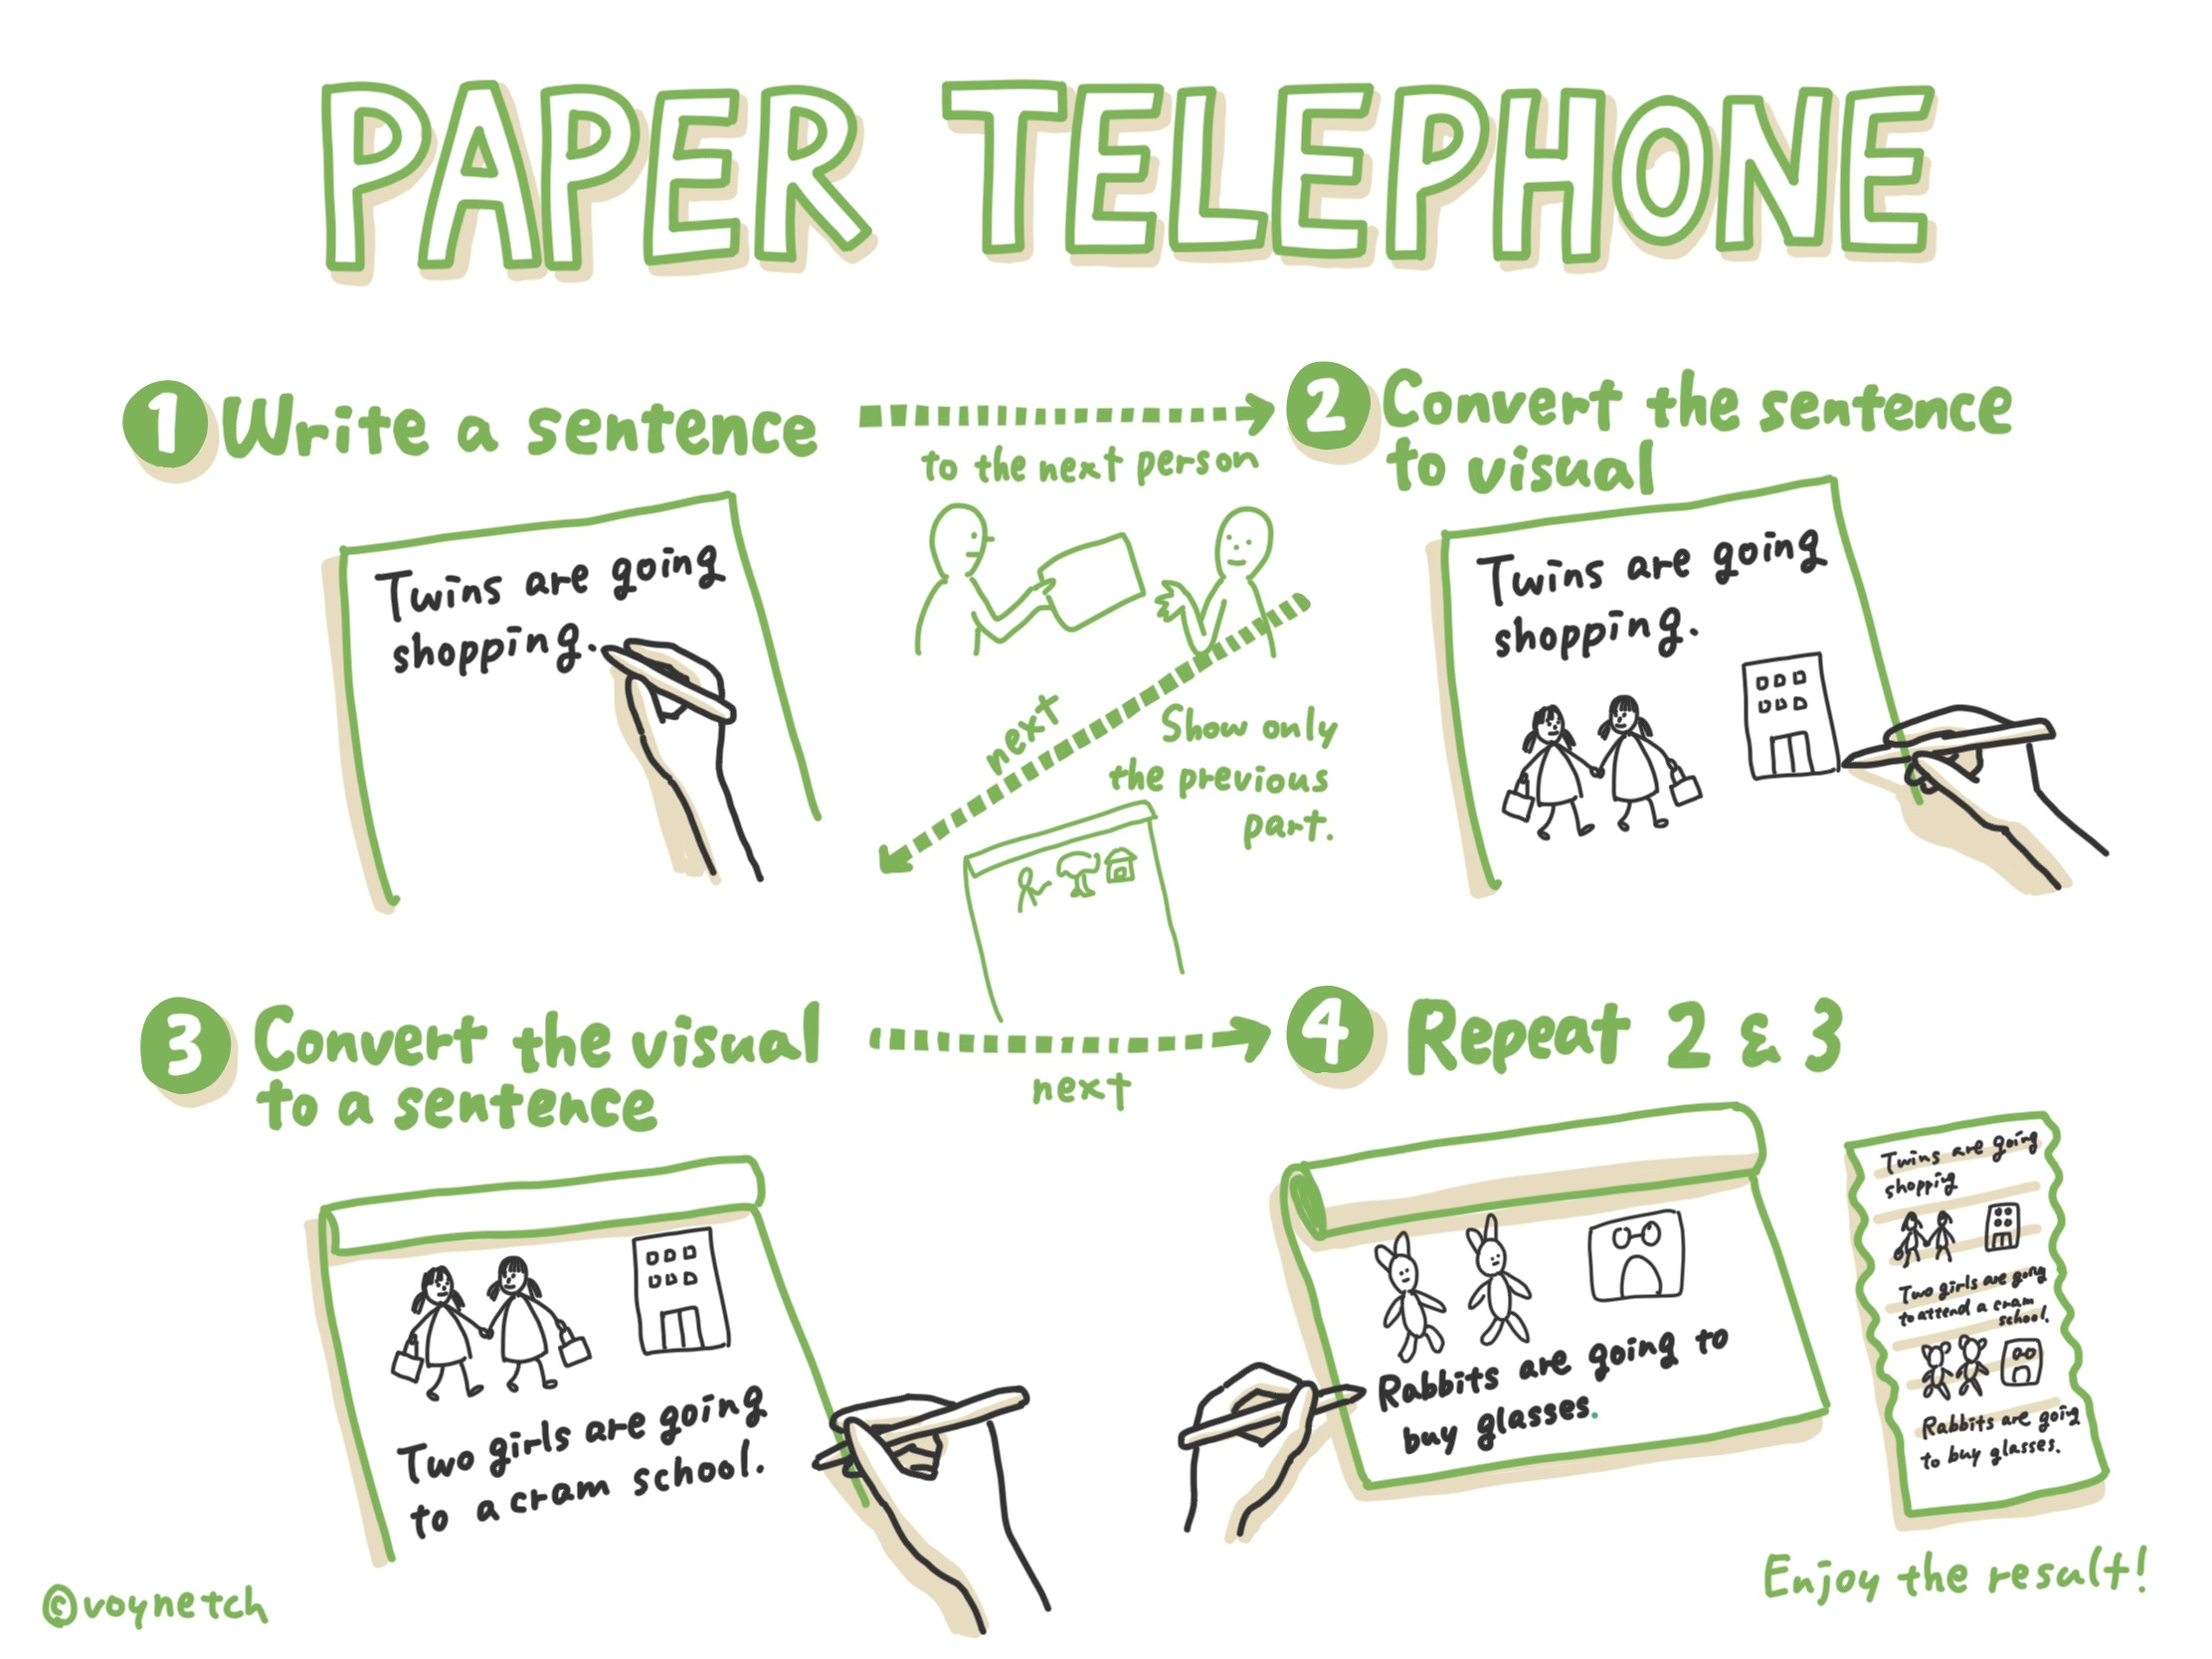 Paper Telephone Image (1/1)